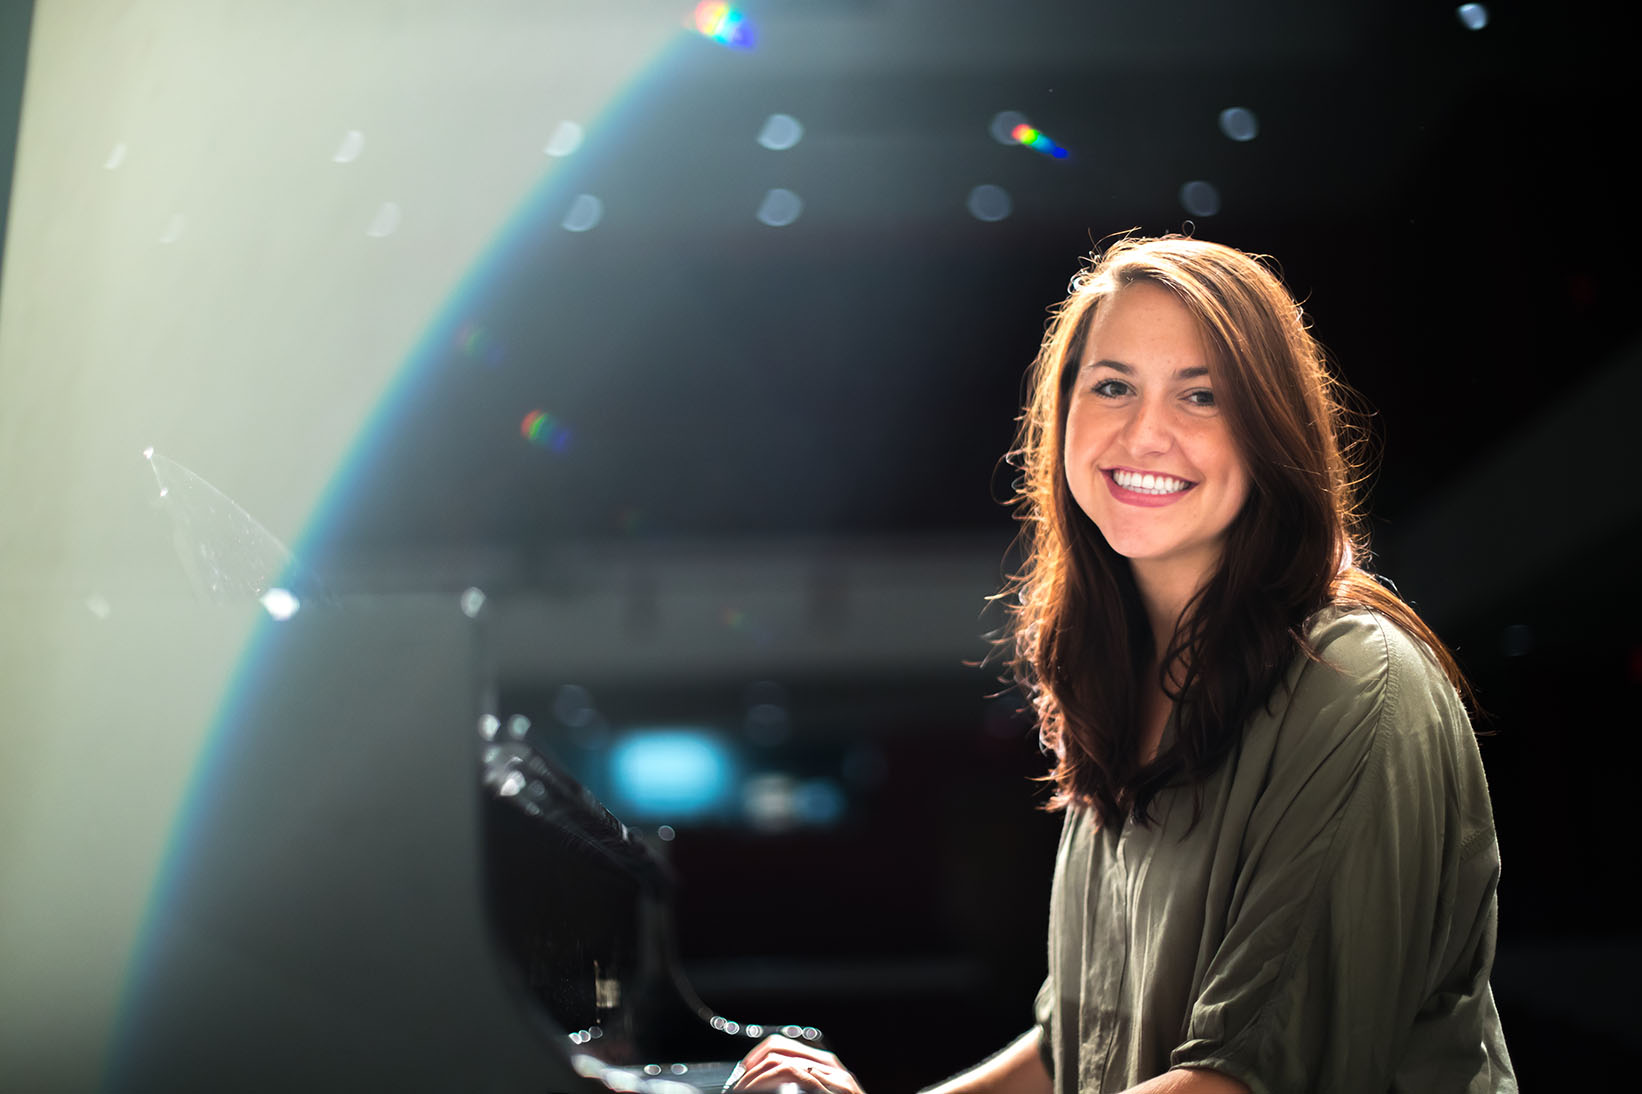 Susannah White poses for photo at MMC concert hall piano